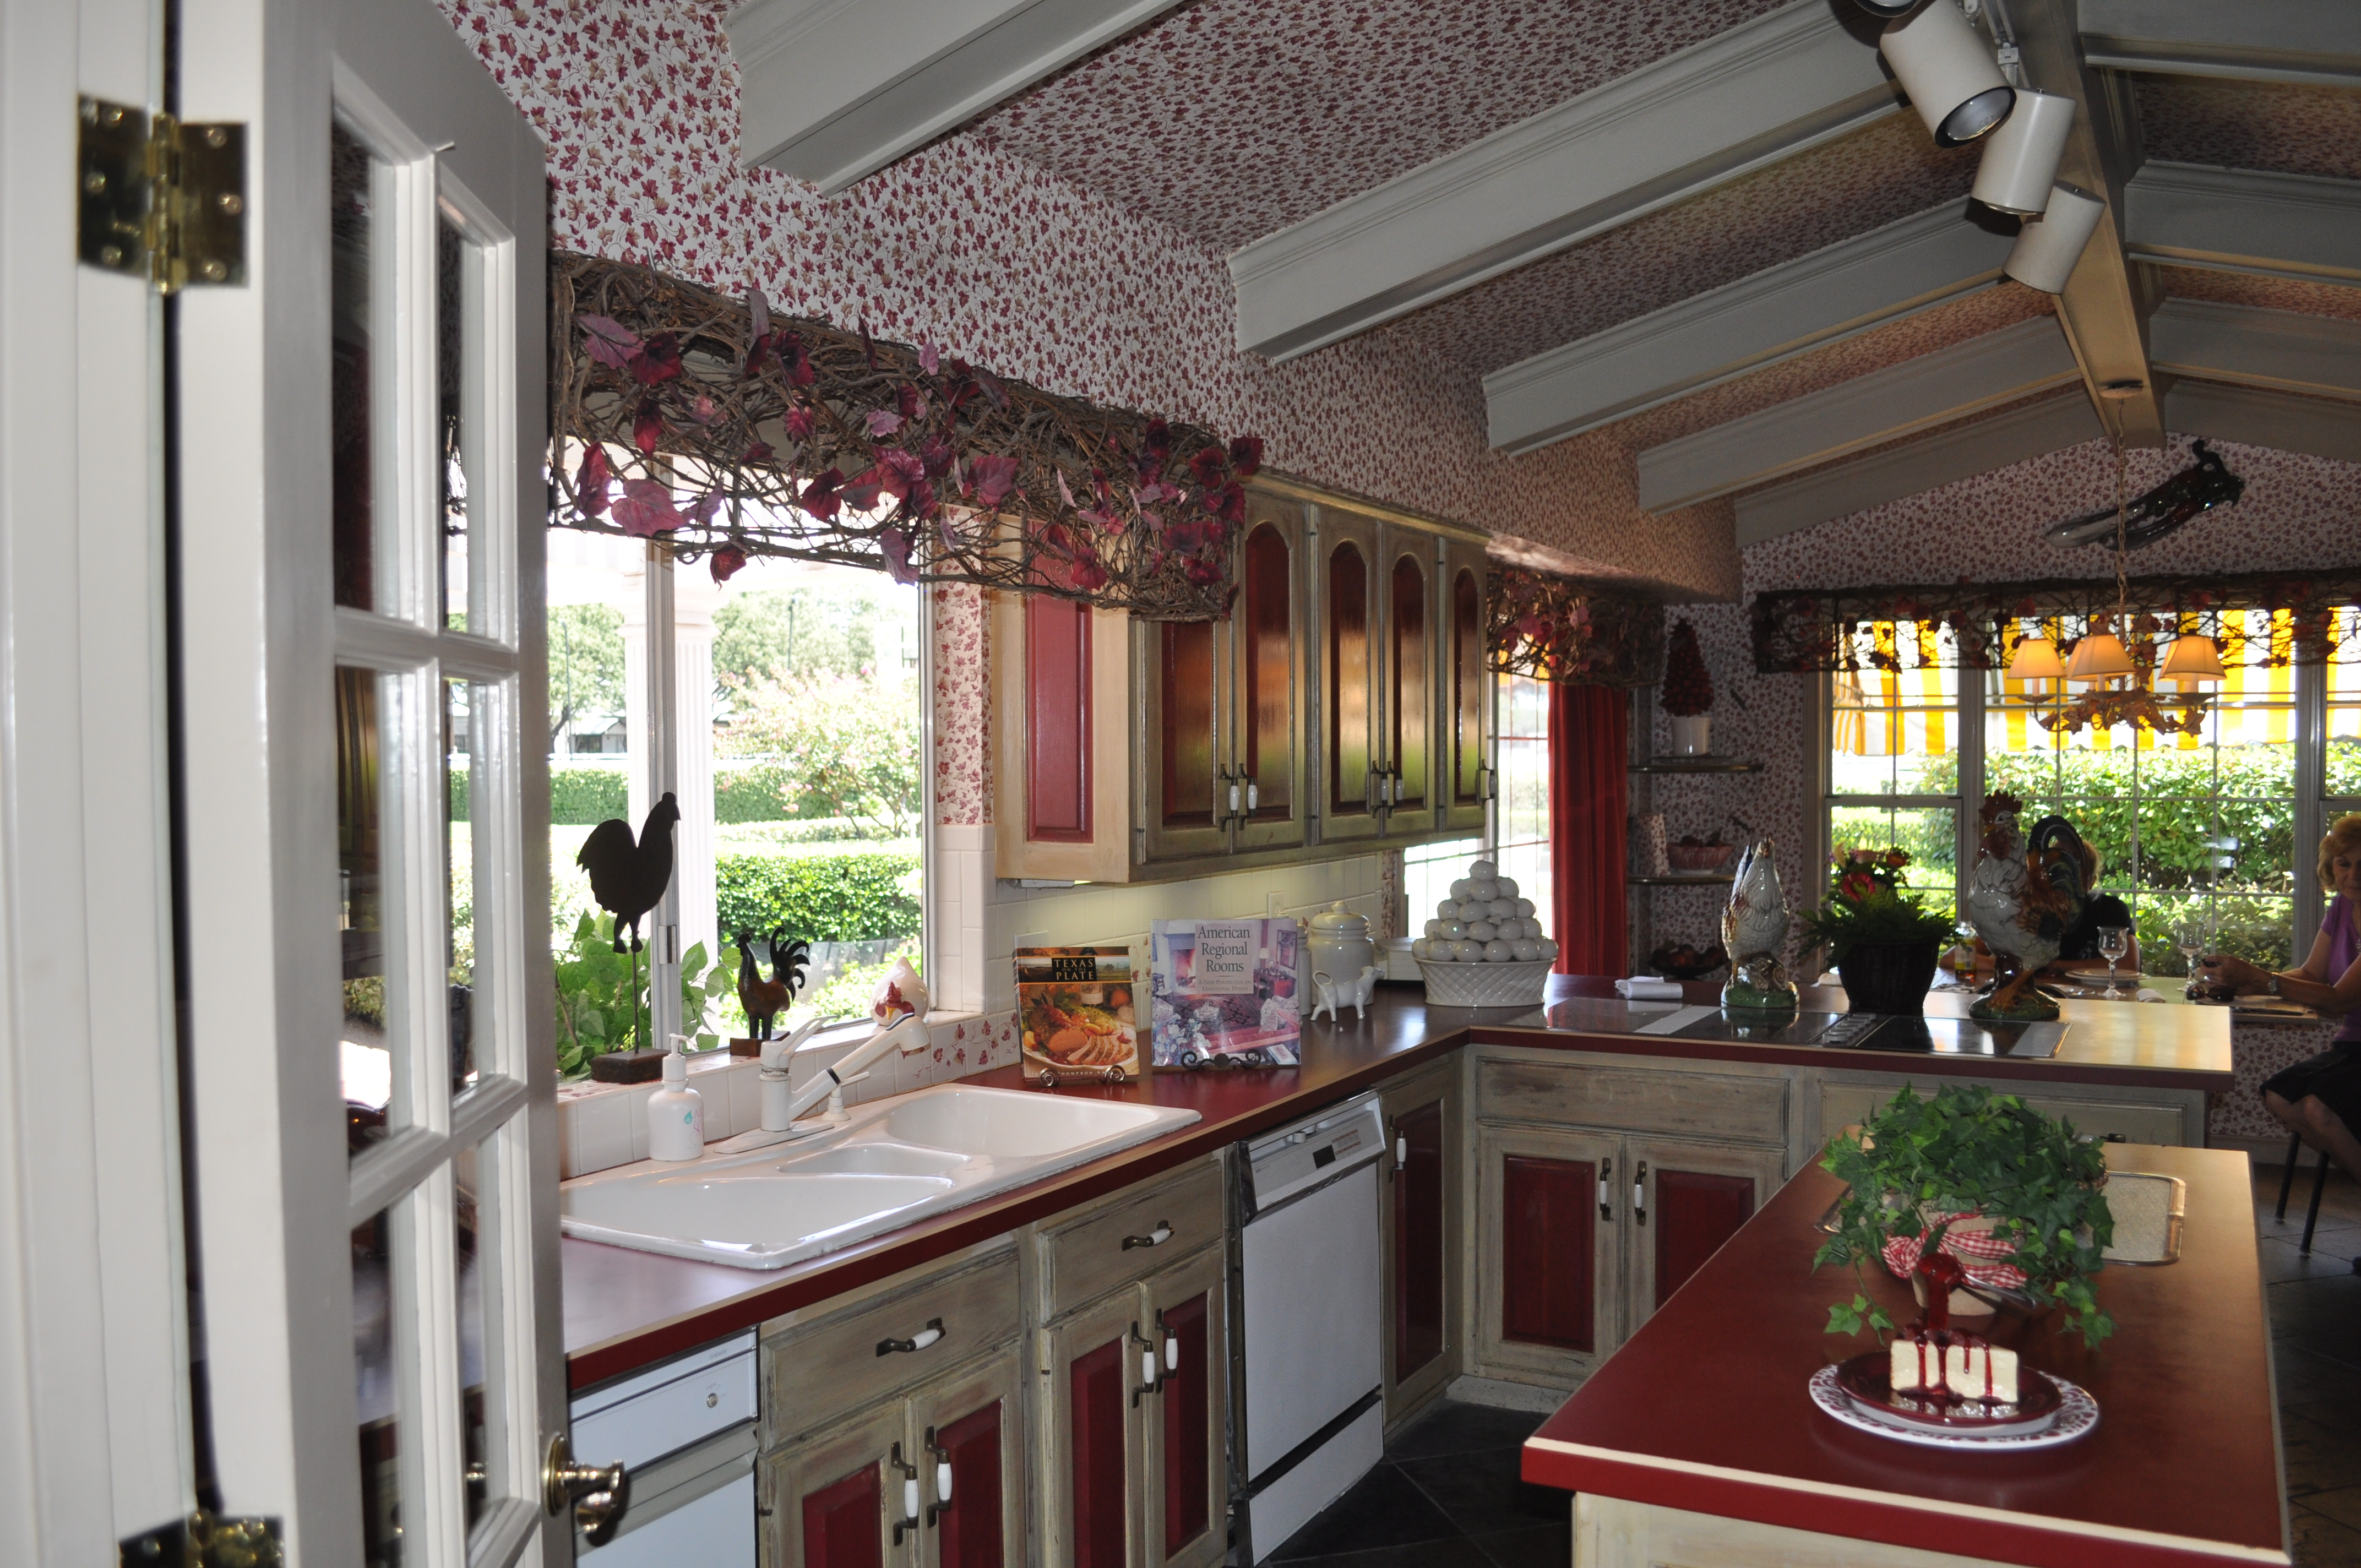 This Is The Southfork Mansion Kitchen. Many Scenes Were Filmed Here.